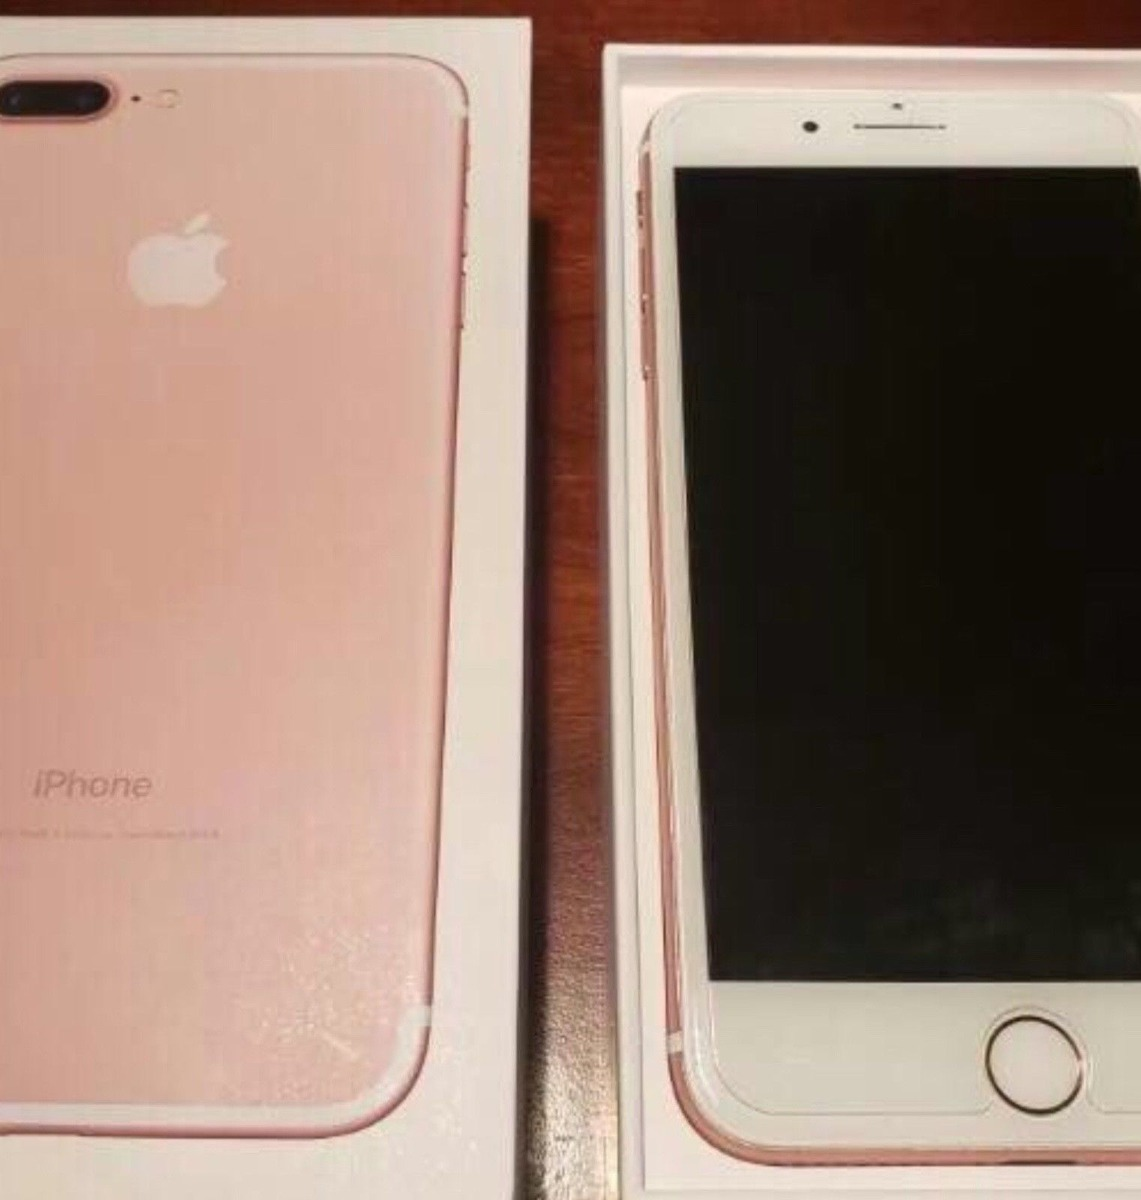 d7f13e7f76b apple iphone 7 plus - 256gb - oro rosa (desbloqueado) a1661. Cargando zoom.